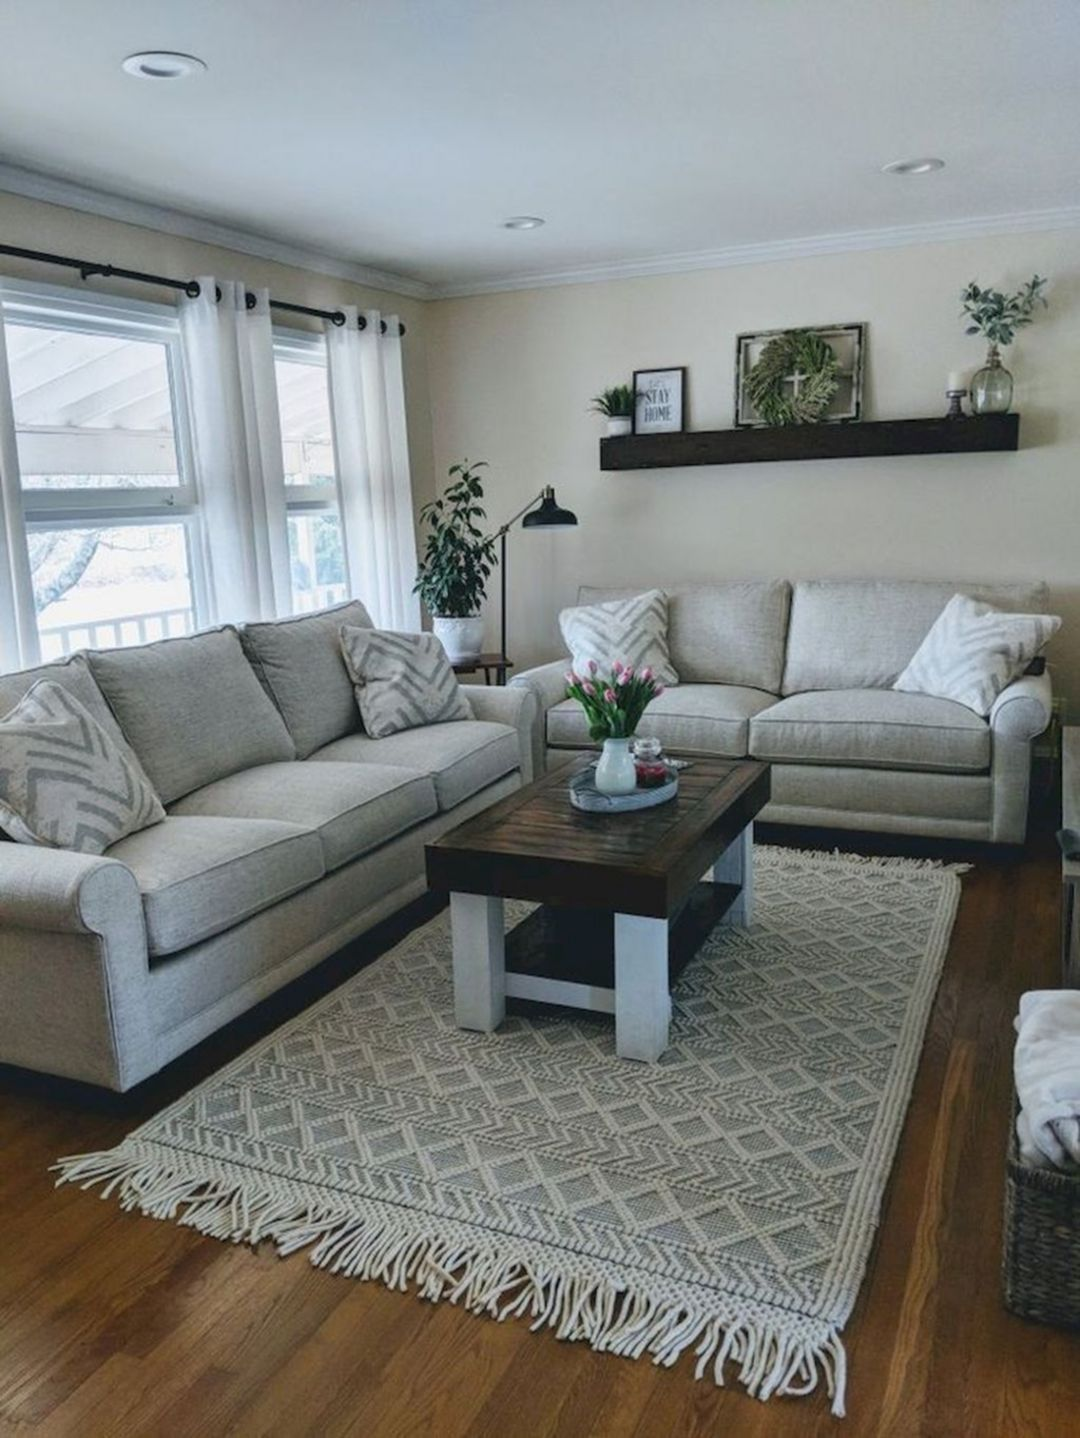 15 Best Decor Ideas For Your Small Living Room Apartment ...